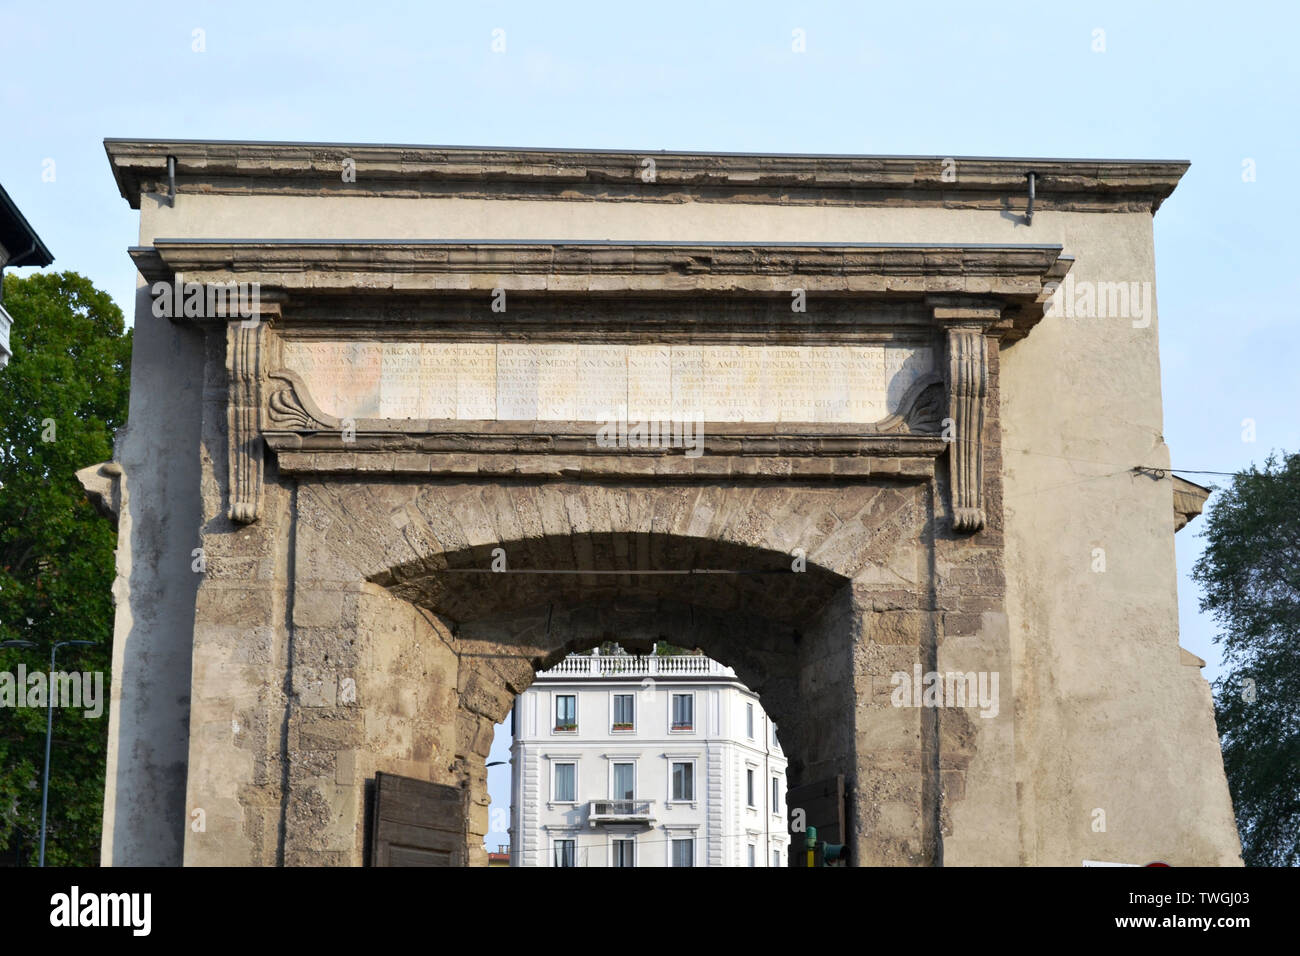 Detail of the internal view from the part of the city to the Porta Romana ancient gate of Milan from year 1596. Stock Photo